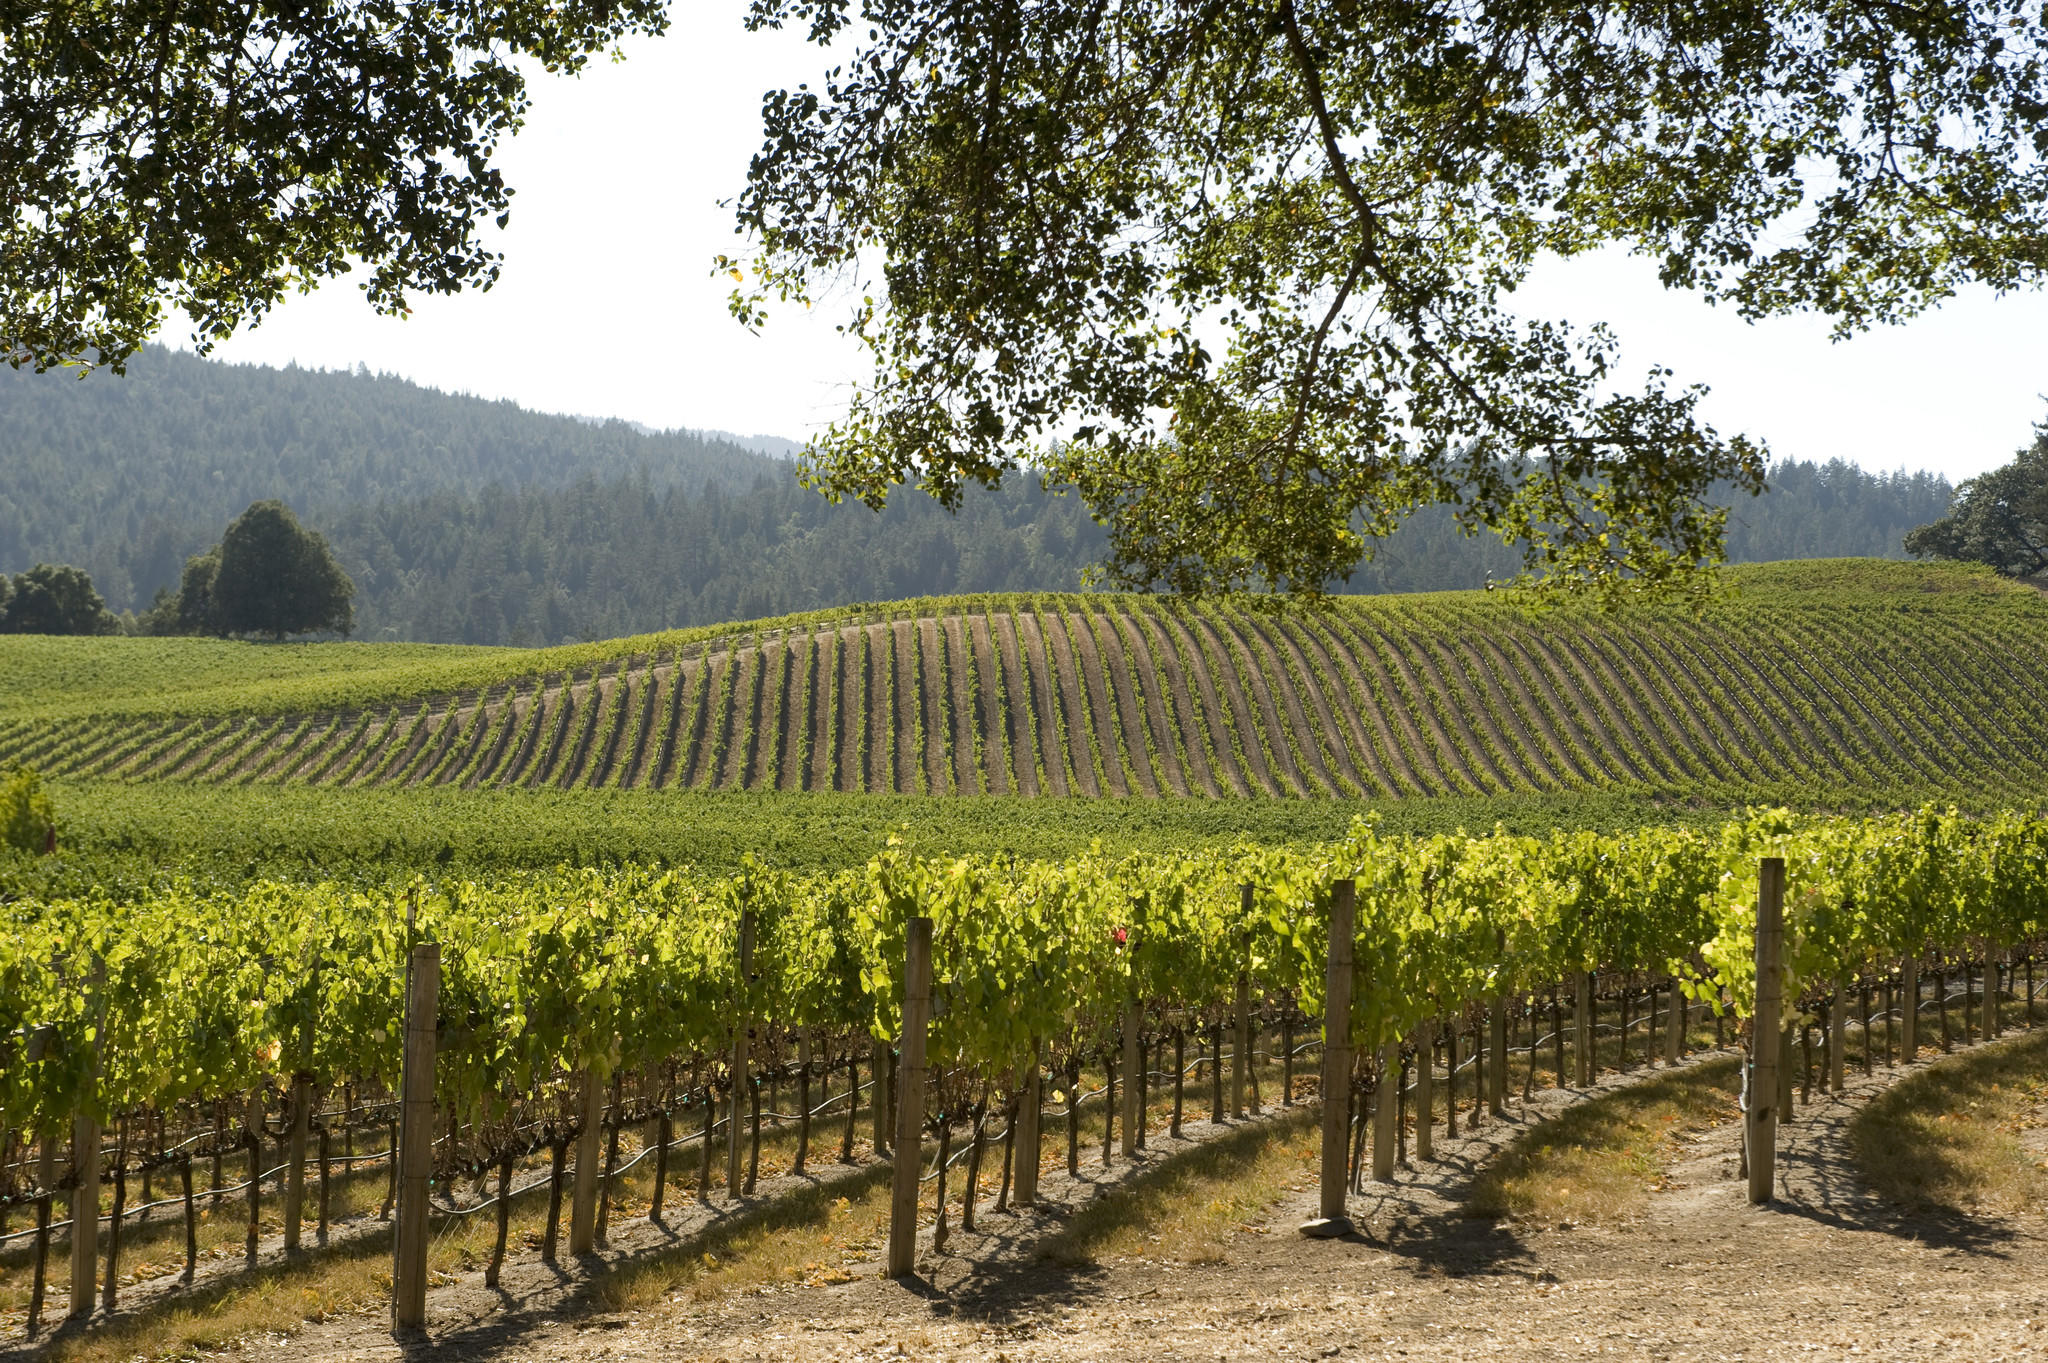 Mendocino County, Navarro Vineyards in Anderson Valley. (Robert Holmes / Getty Images / Dorling Kindersley)